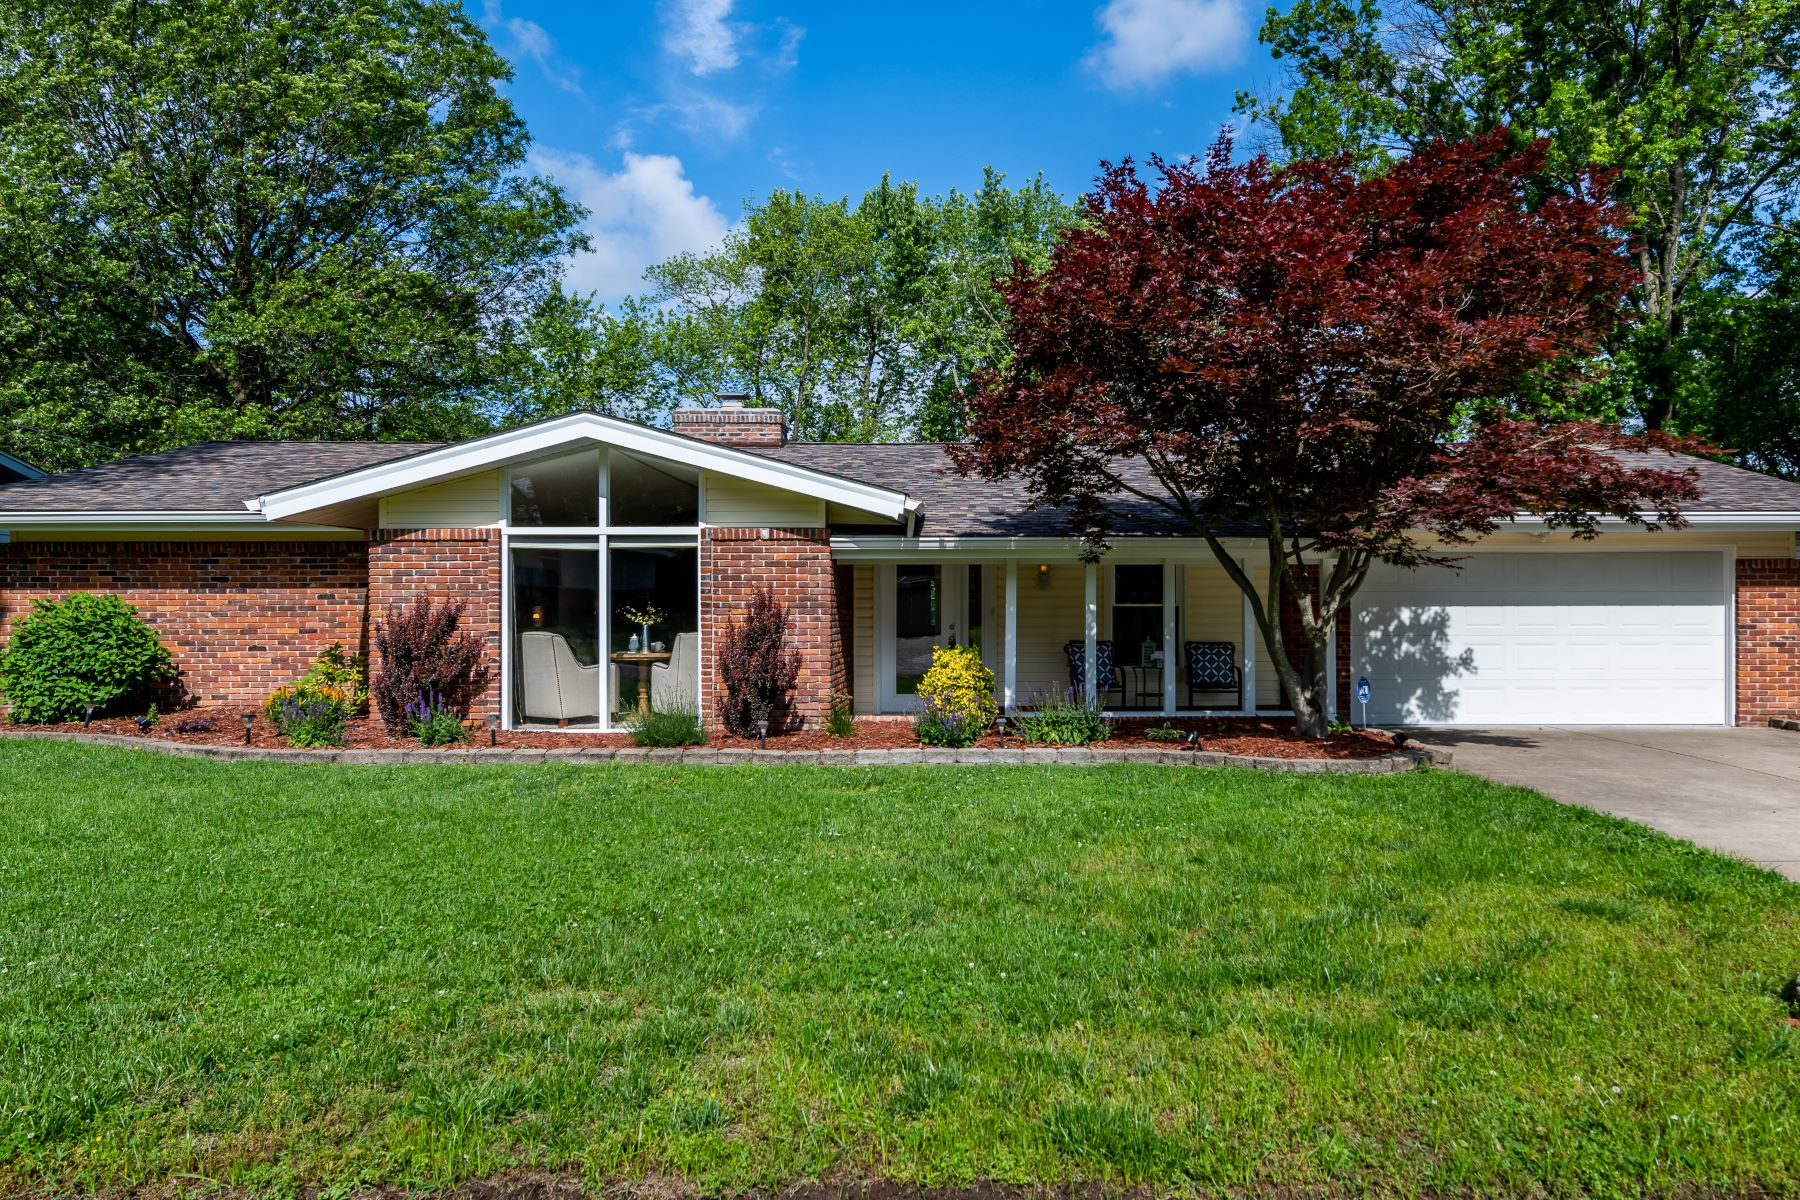 Single Family Homes for Sale at Ranch living at it's finest! 1539 Rathford Drive St. Louis, Missouri 63146 United States